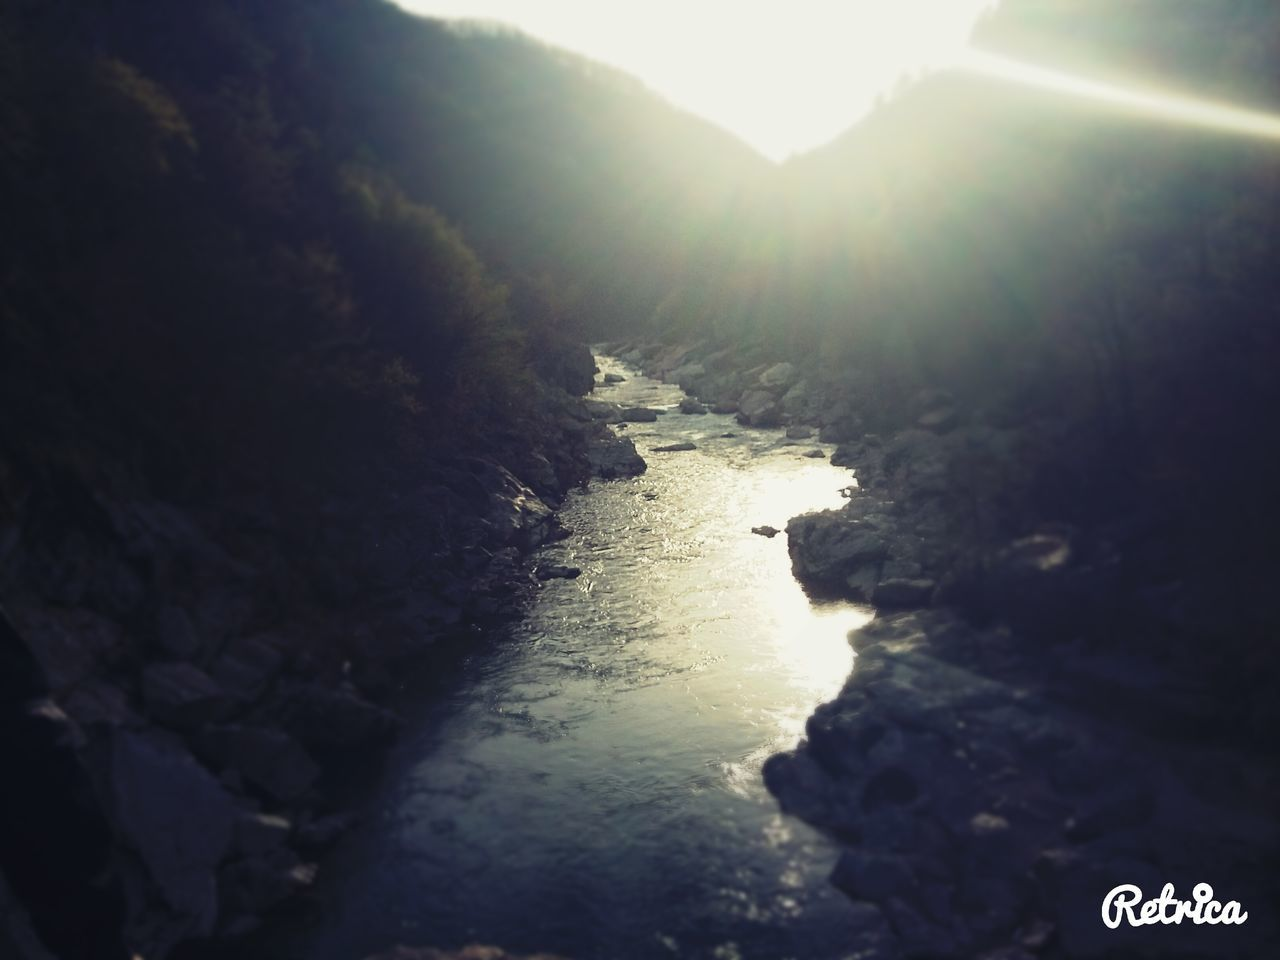 sunlight, day, nature, outdoors, no people, water, beauty in nature